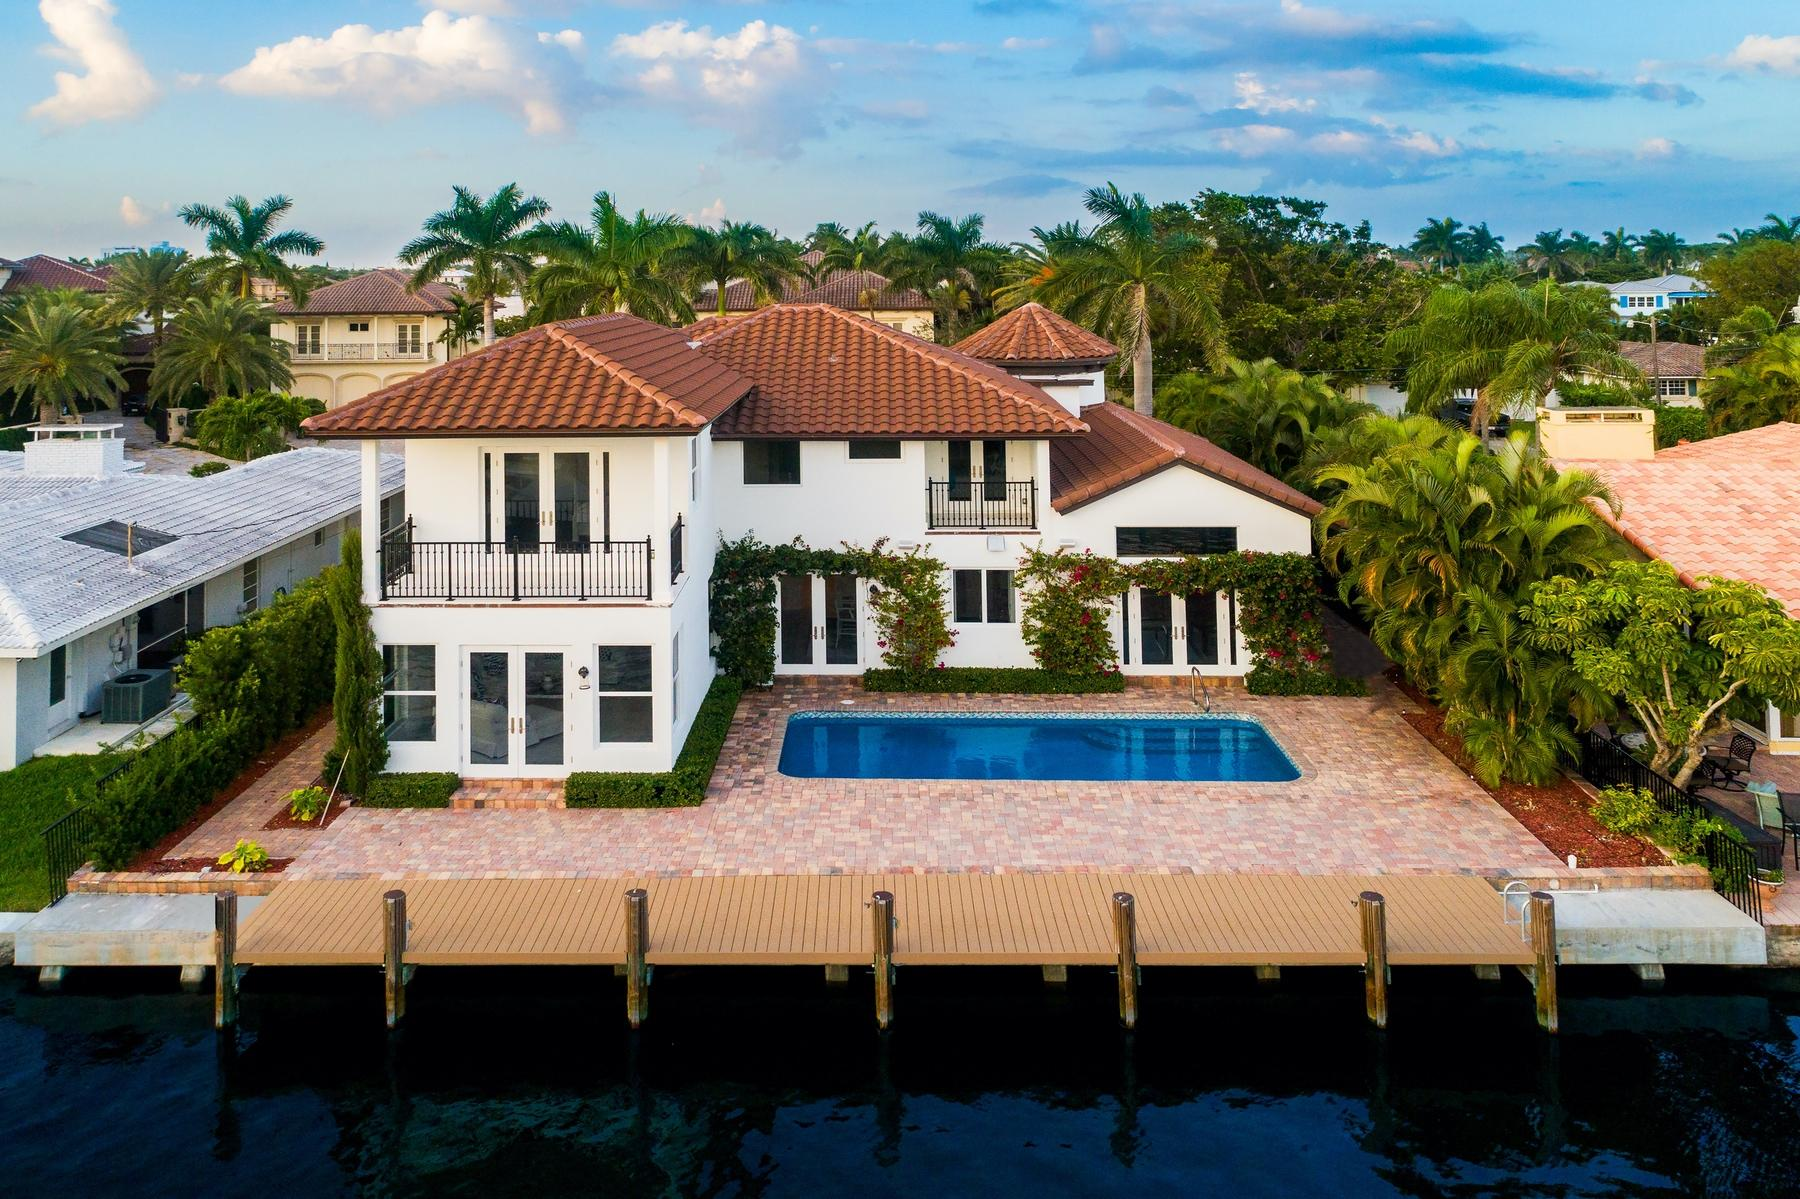 Stunning custom built new construction waterfront home in East Delray Beach. Fully furnished with luxury finishes. Features 75 feet of deep water frontage and ready to use dock. Welcoming mahogany entrance doors, marble flooring, hand carved custom cabinetry. Gourmet chefs kitchen, spacious island with bar seating and top of the line appliances. Volume ceilings throughout, views across the intracoastal. Located one block from the beach and less than a mile from Atlantic Avenue's boutiques, restaurants and more.